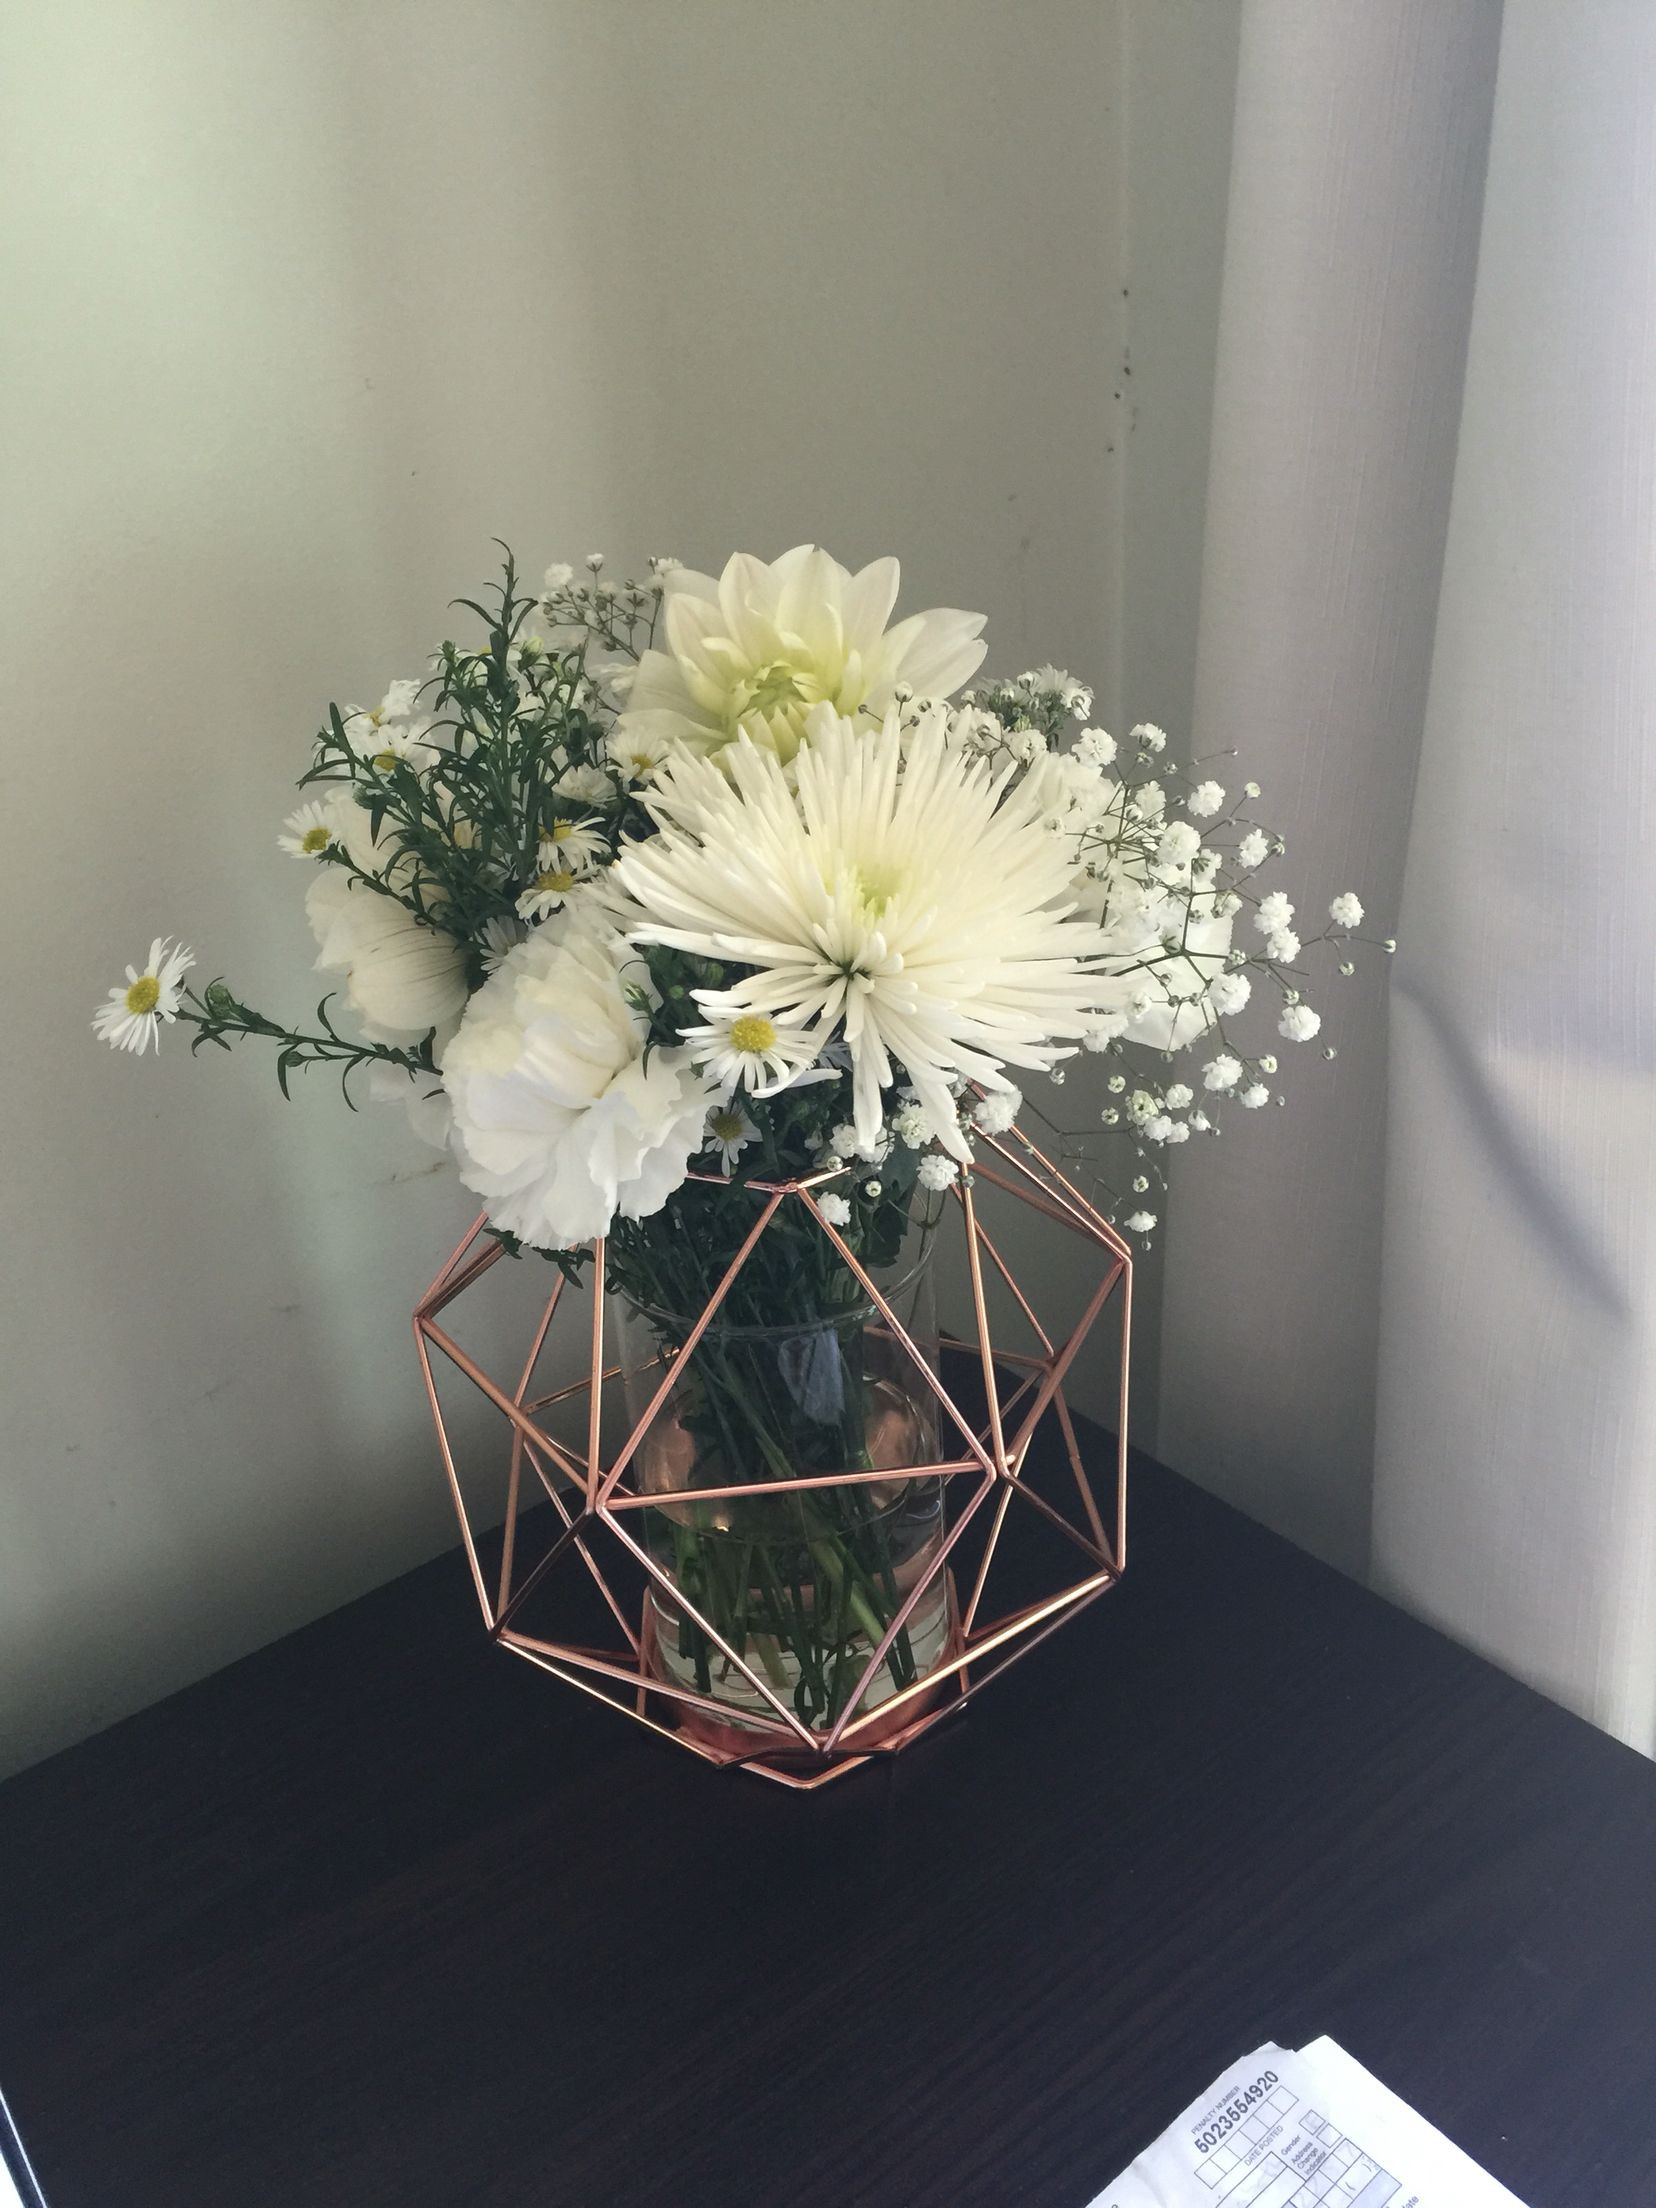 vase display stands of copper geometric candle holder from kmart used as a vase wedding with regard to copper geometric candle holder from kmart used as a vase